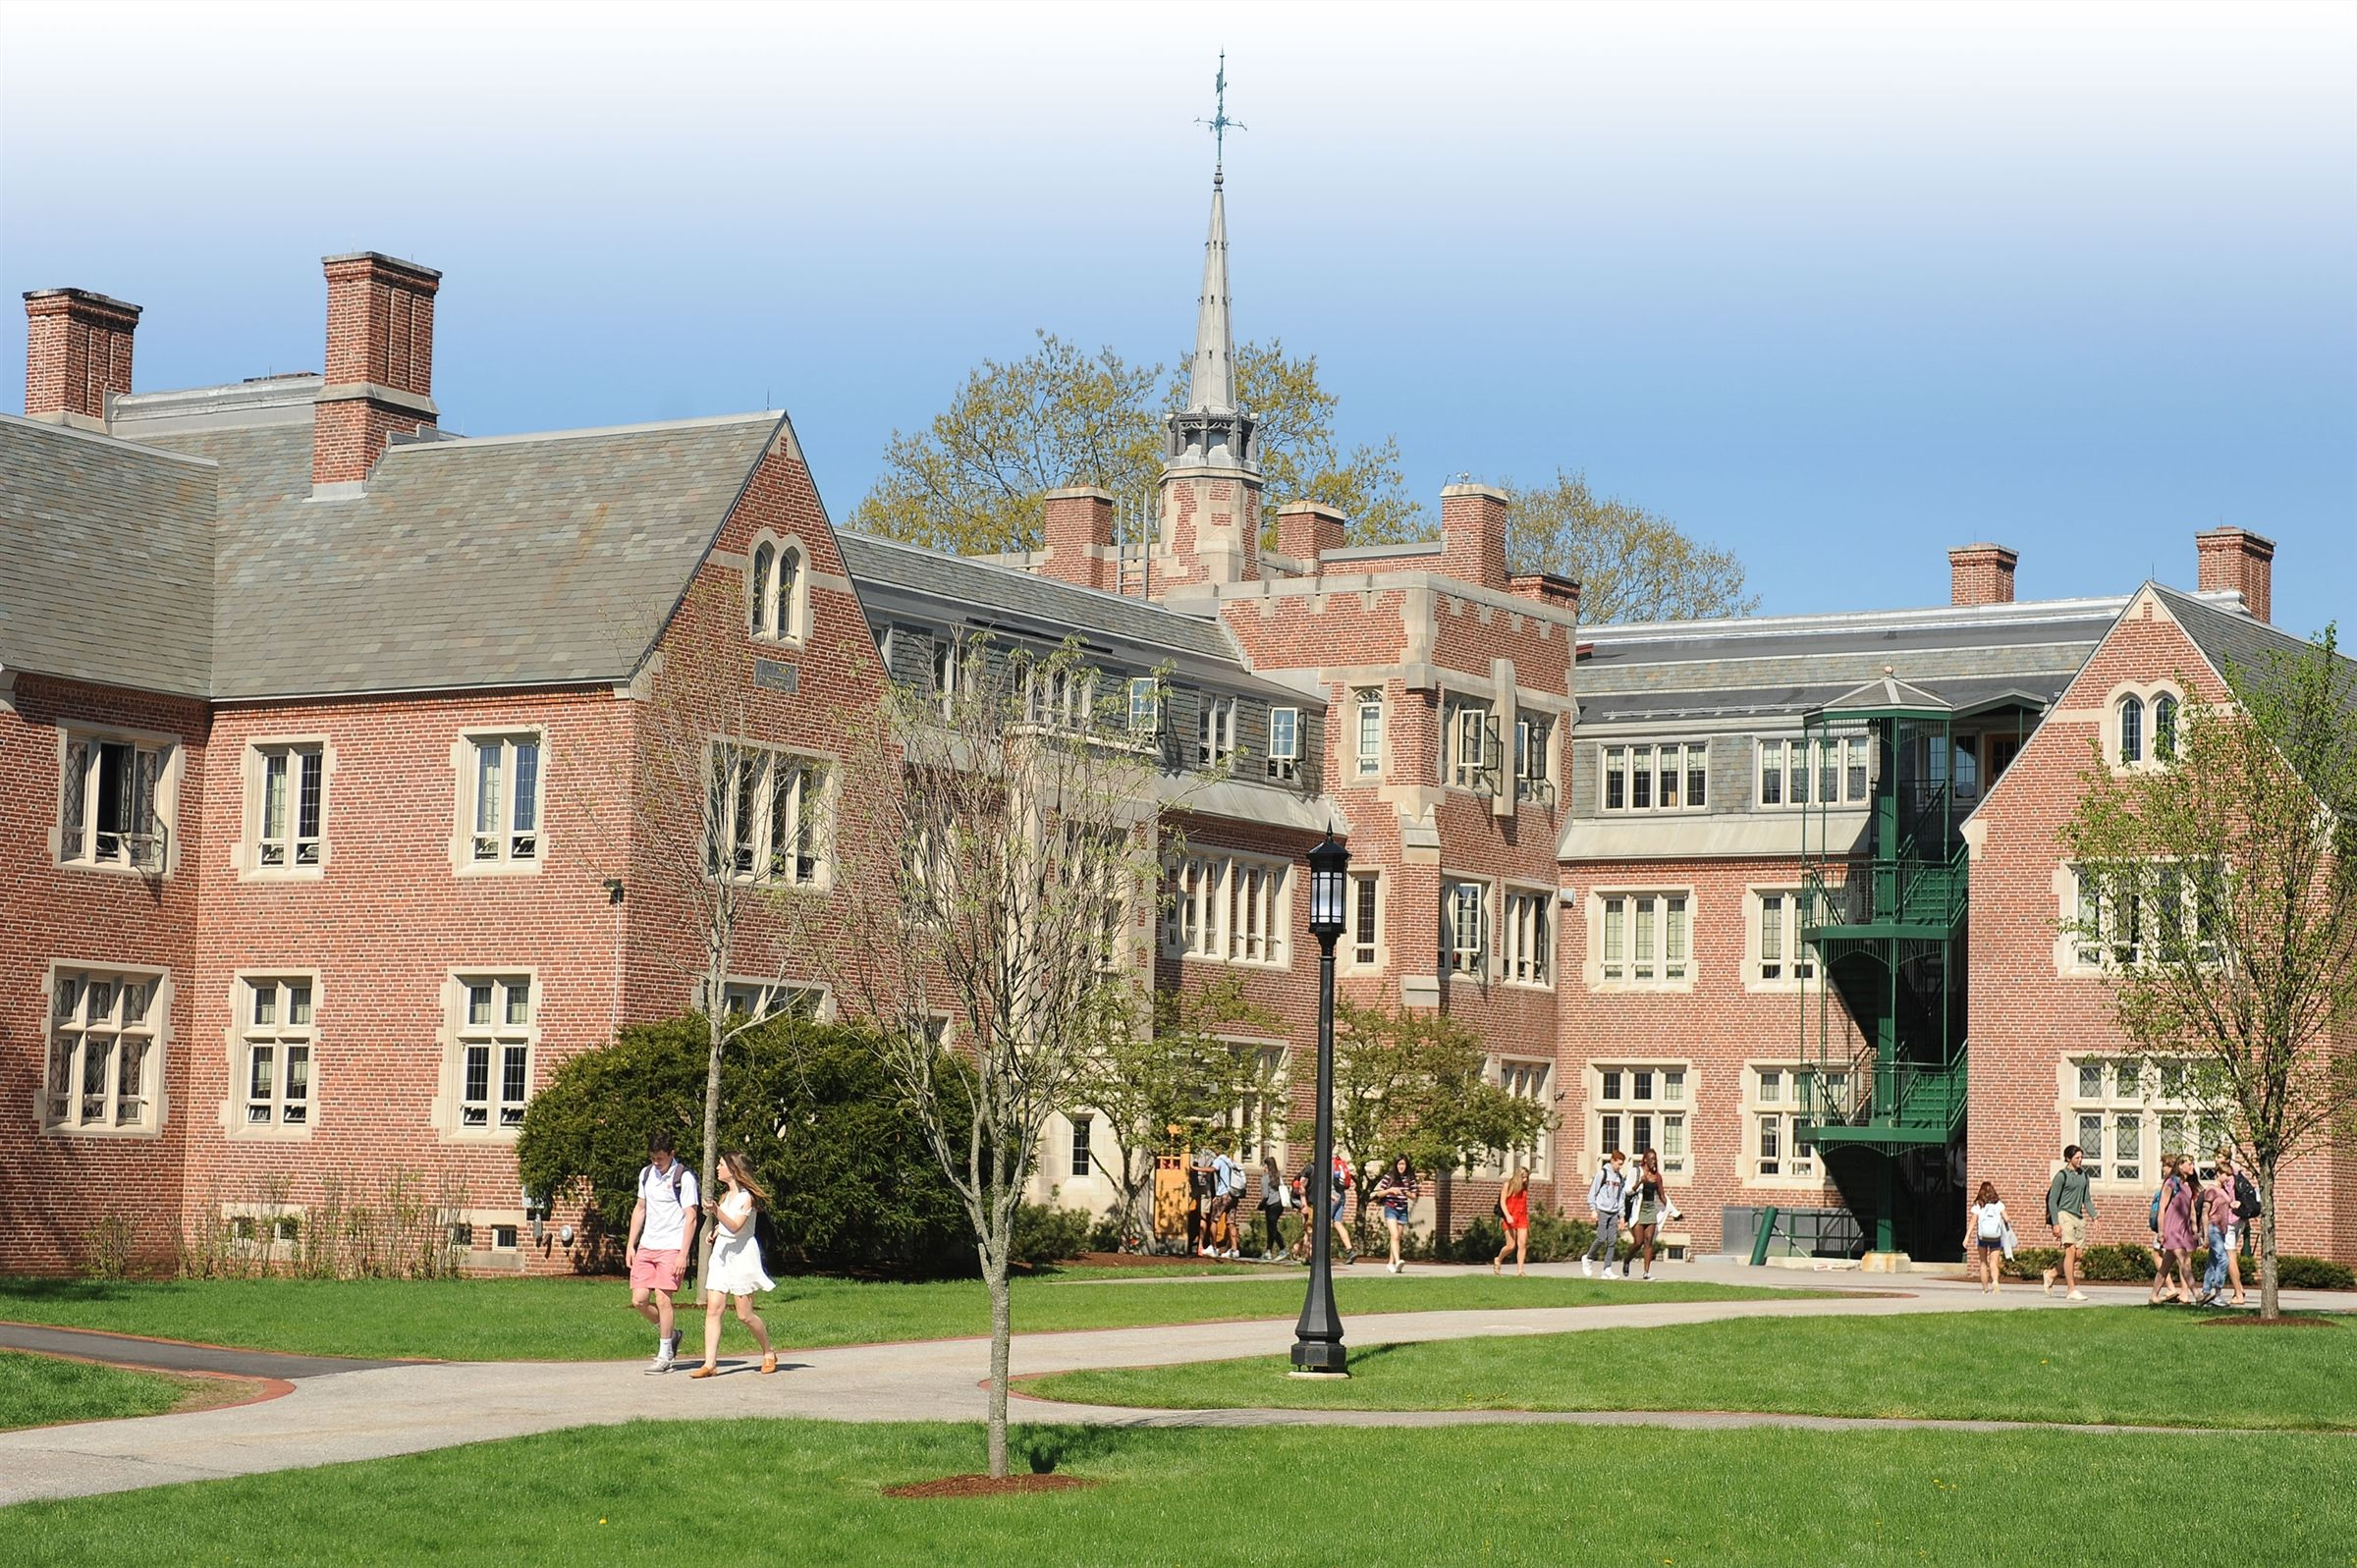 Students walking across campus in front of a large brick building